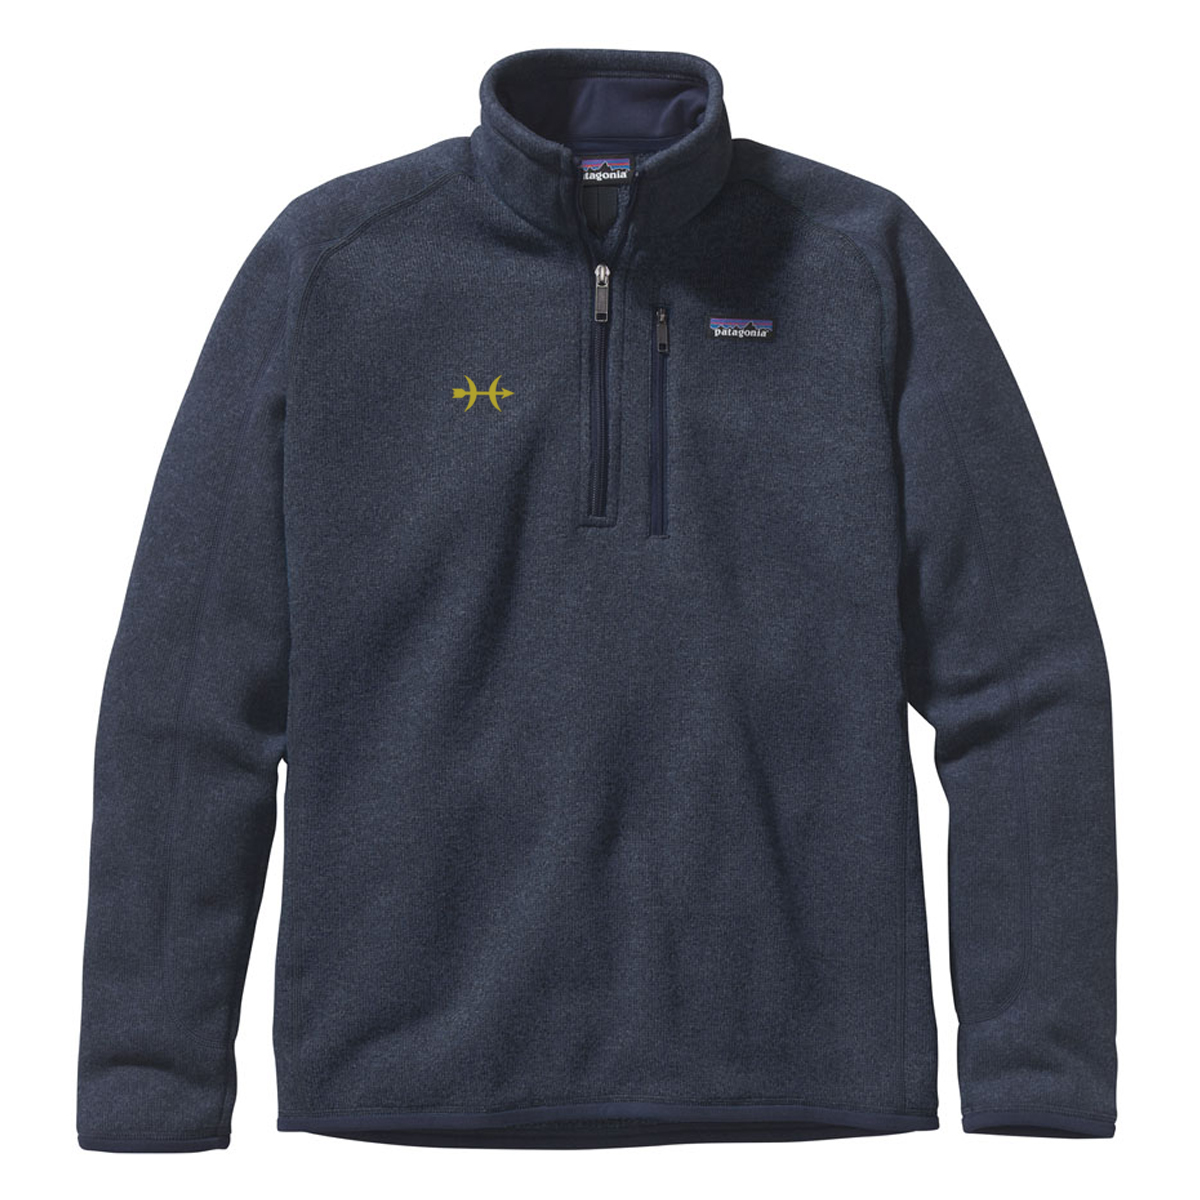 Hunt Yachts- M's Patagonia Better Sweater 1/4 Zip